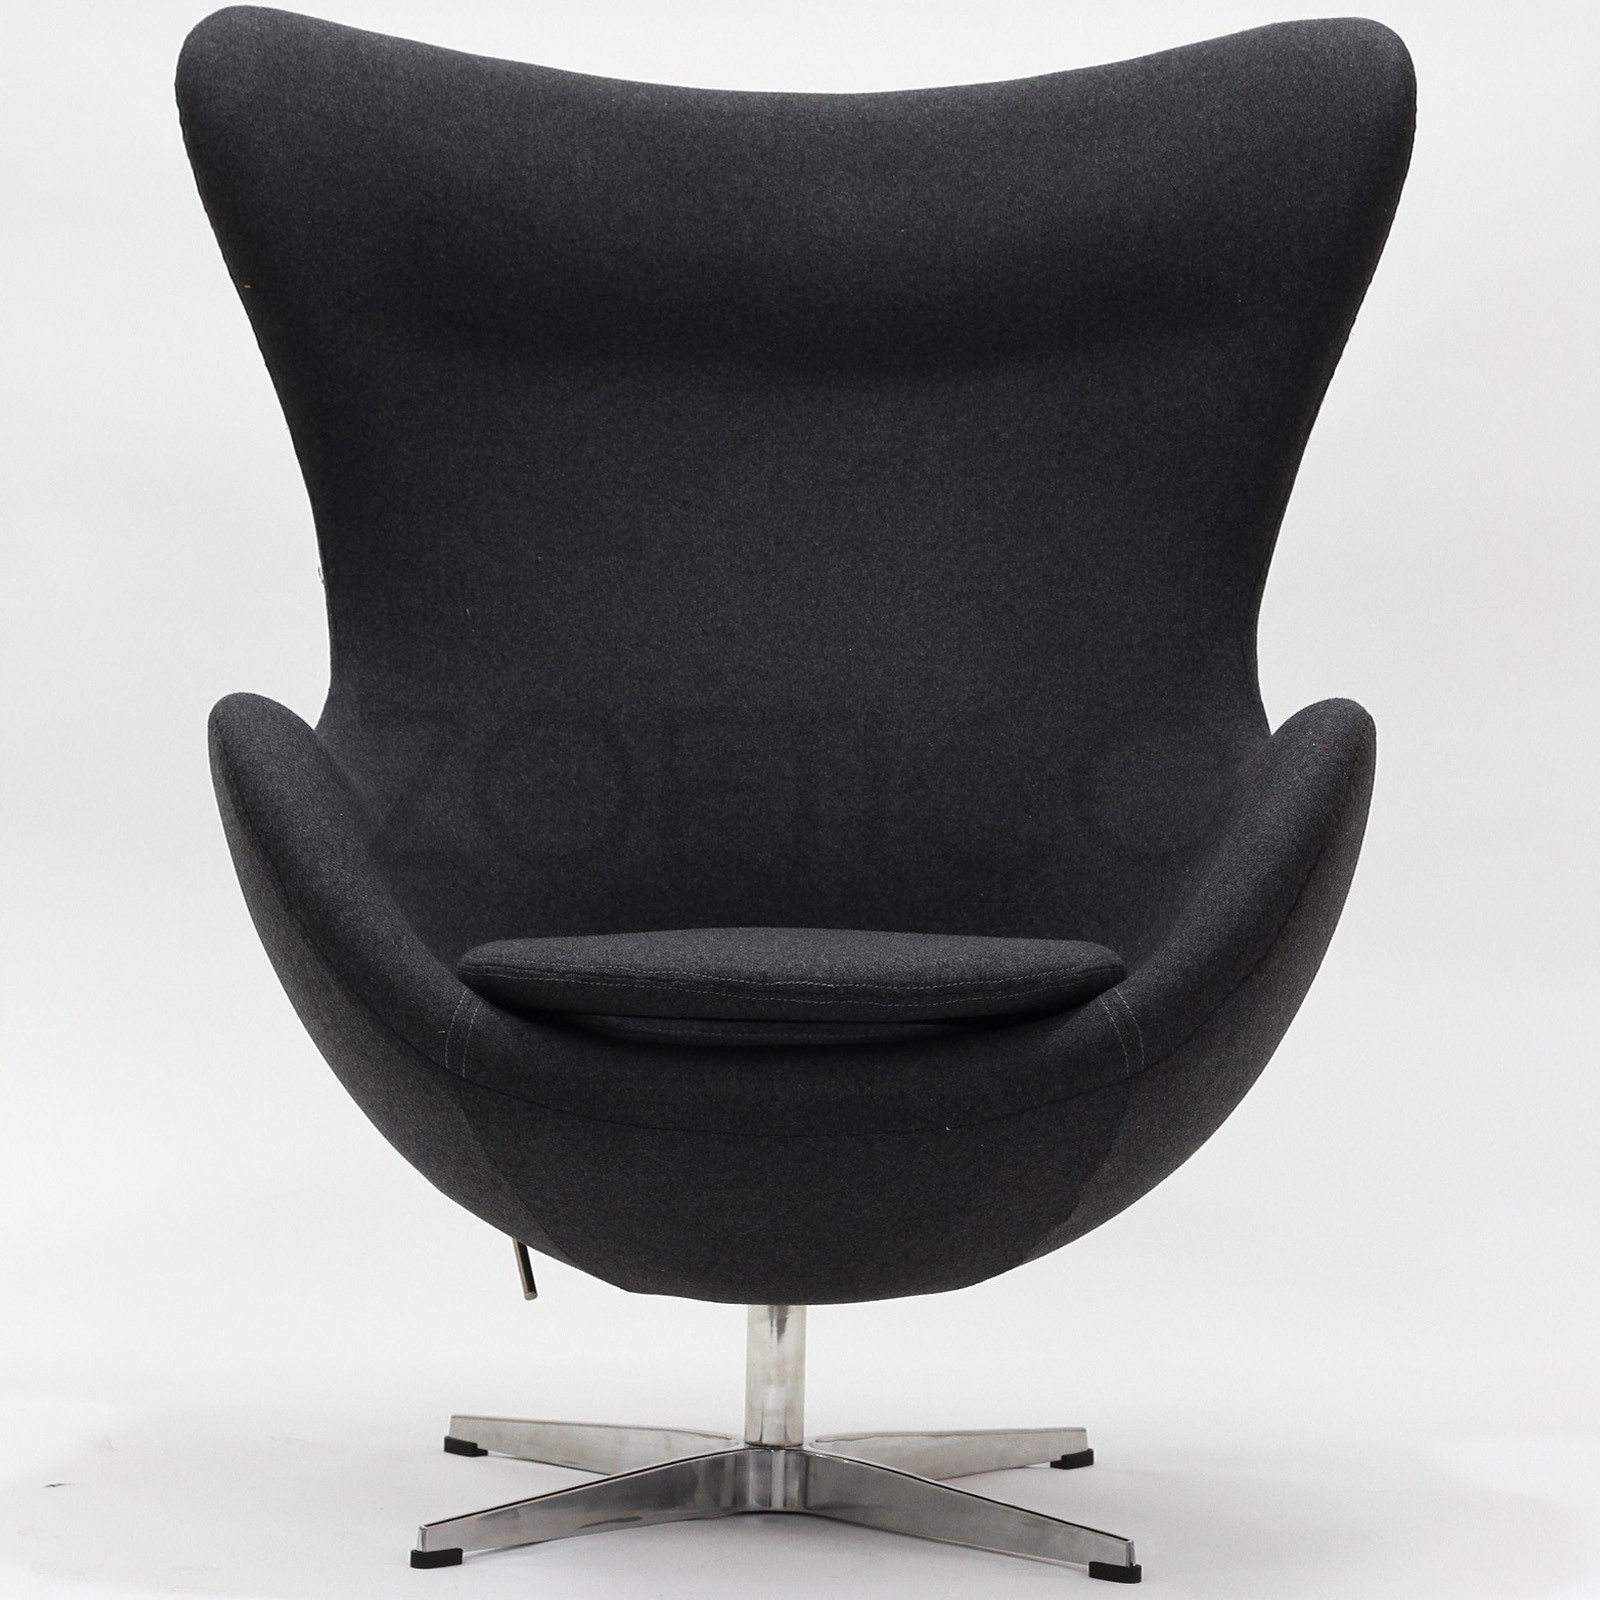 image arne jacobsen egg chair 6533 jpg dumbledore s army role